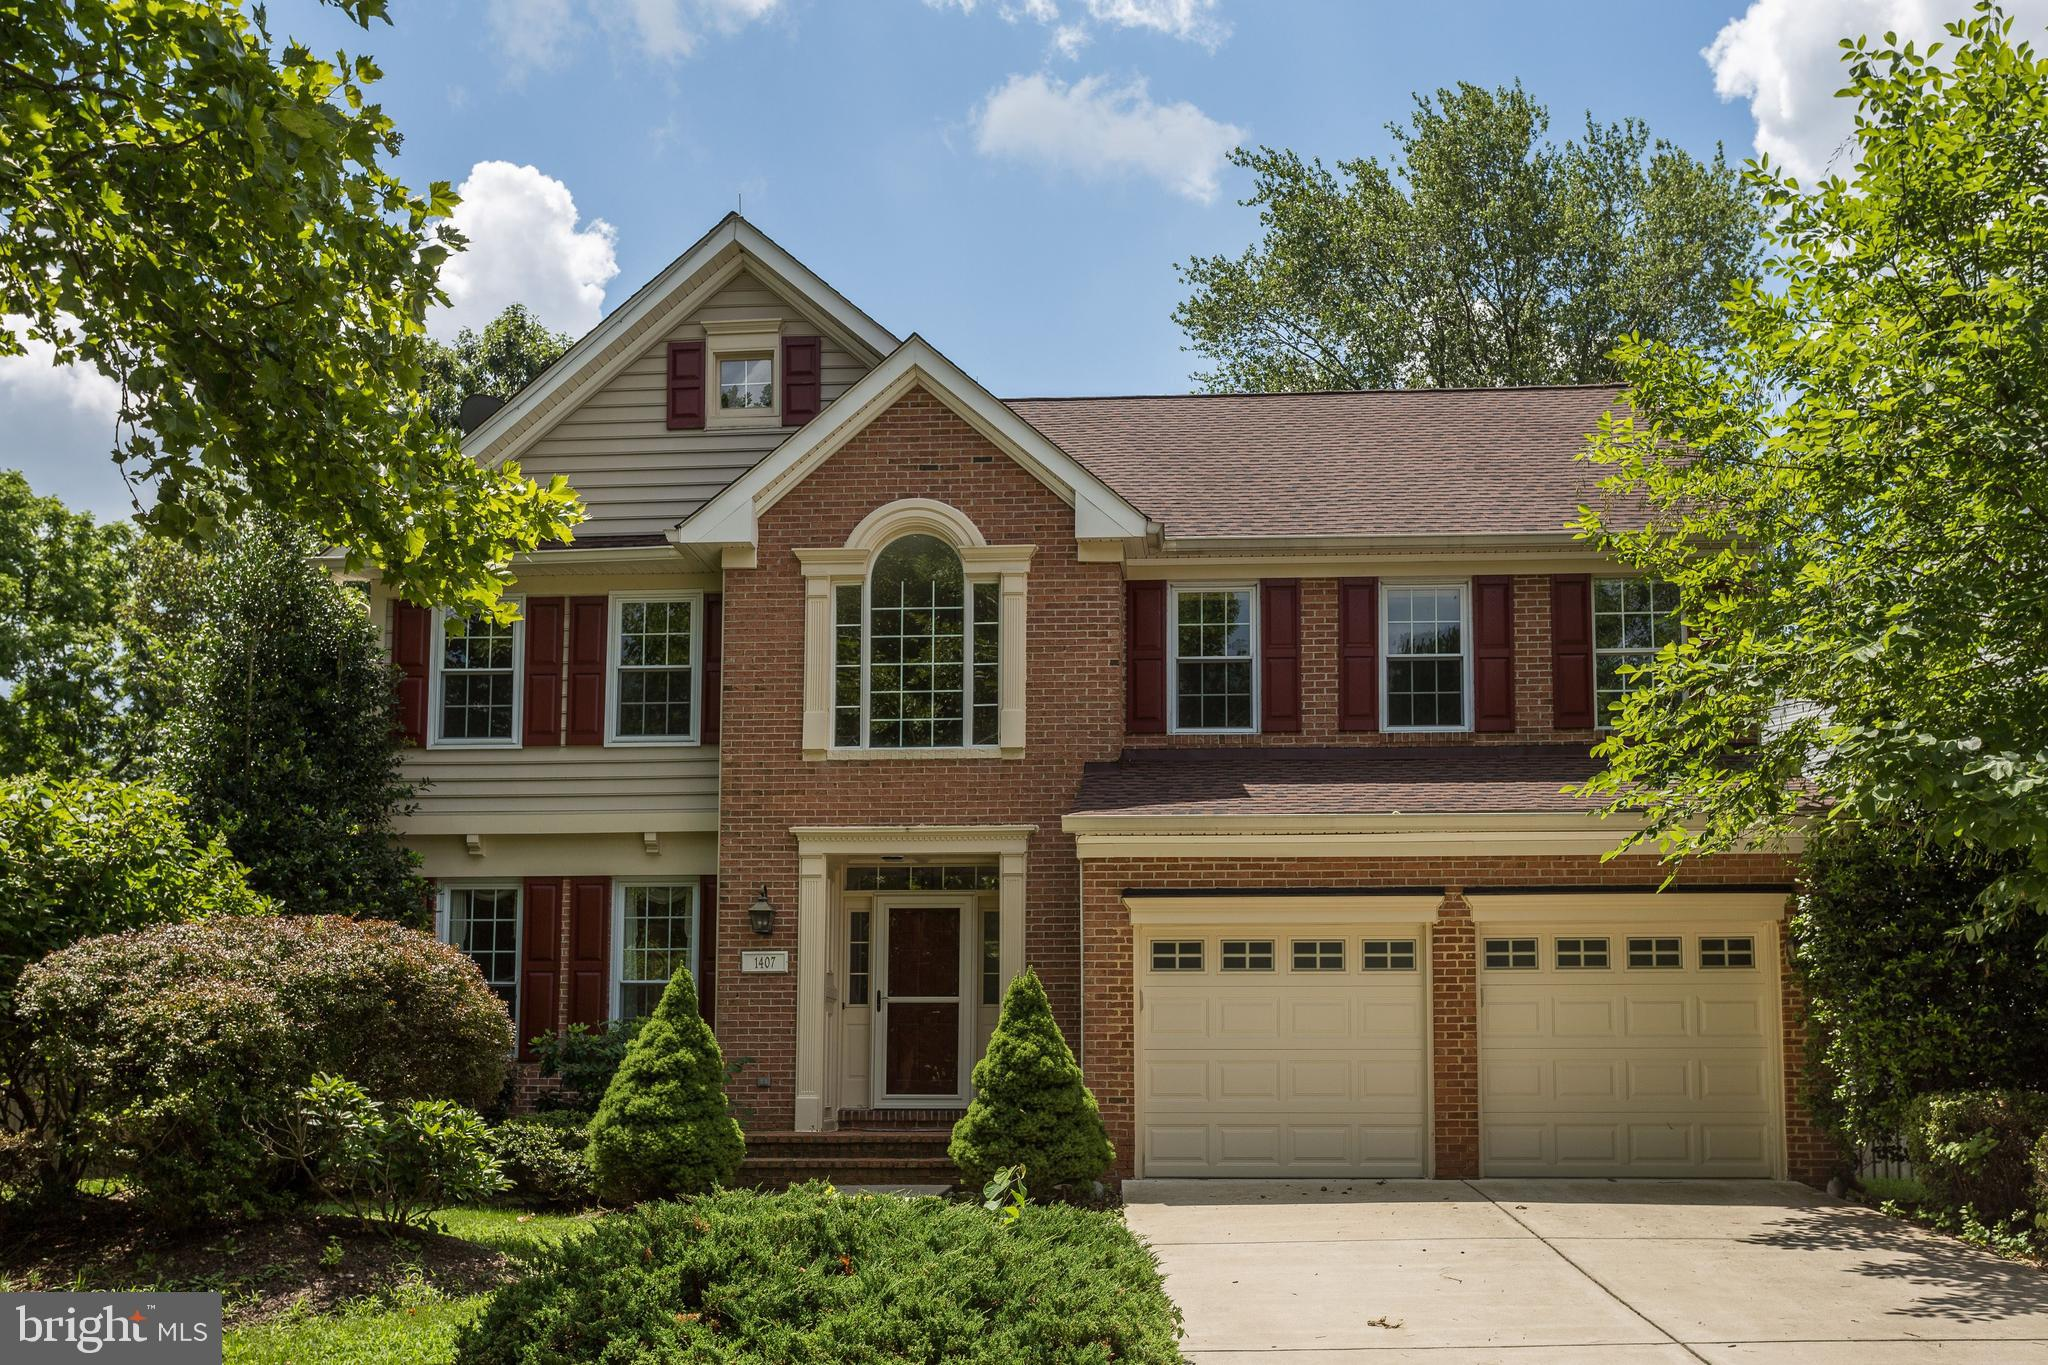 1407 LIMETREE COURT, SILVER SPRING, MD 20904